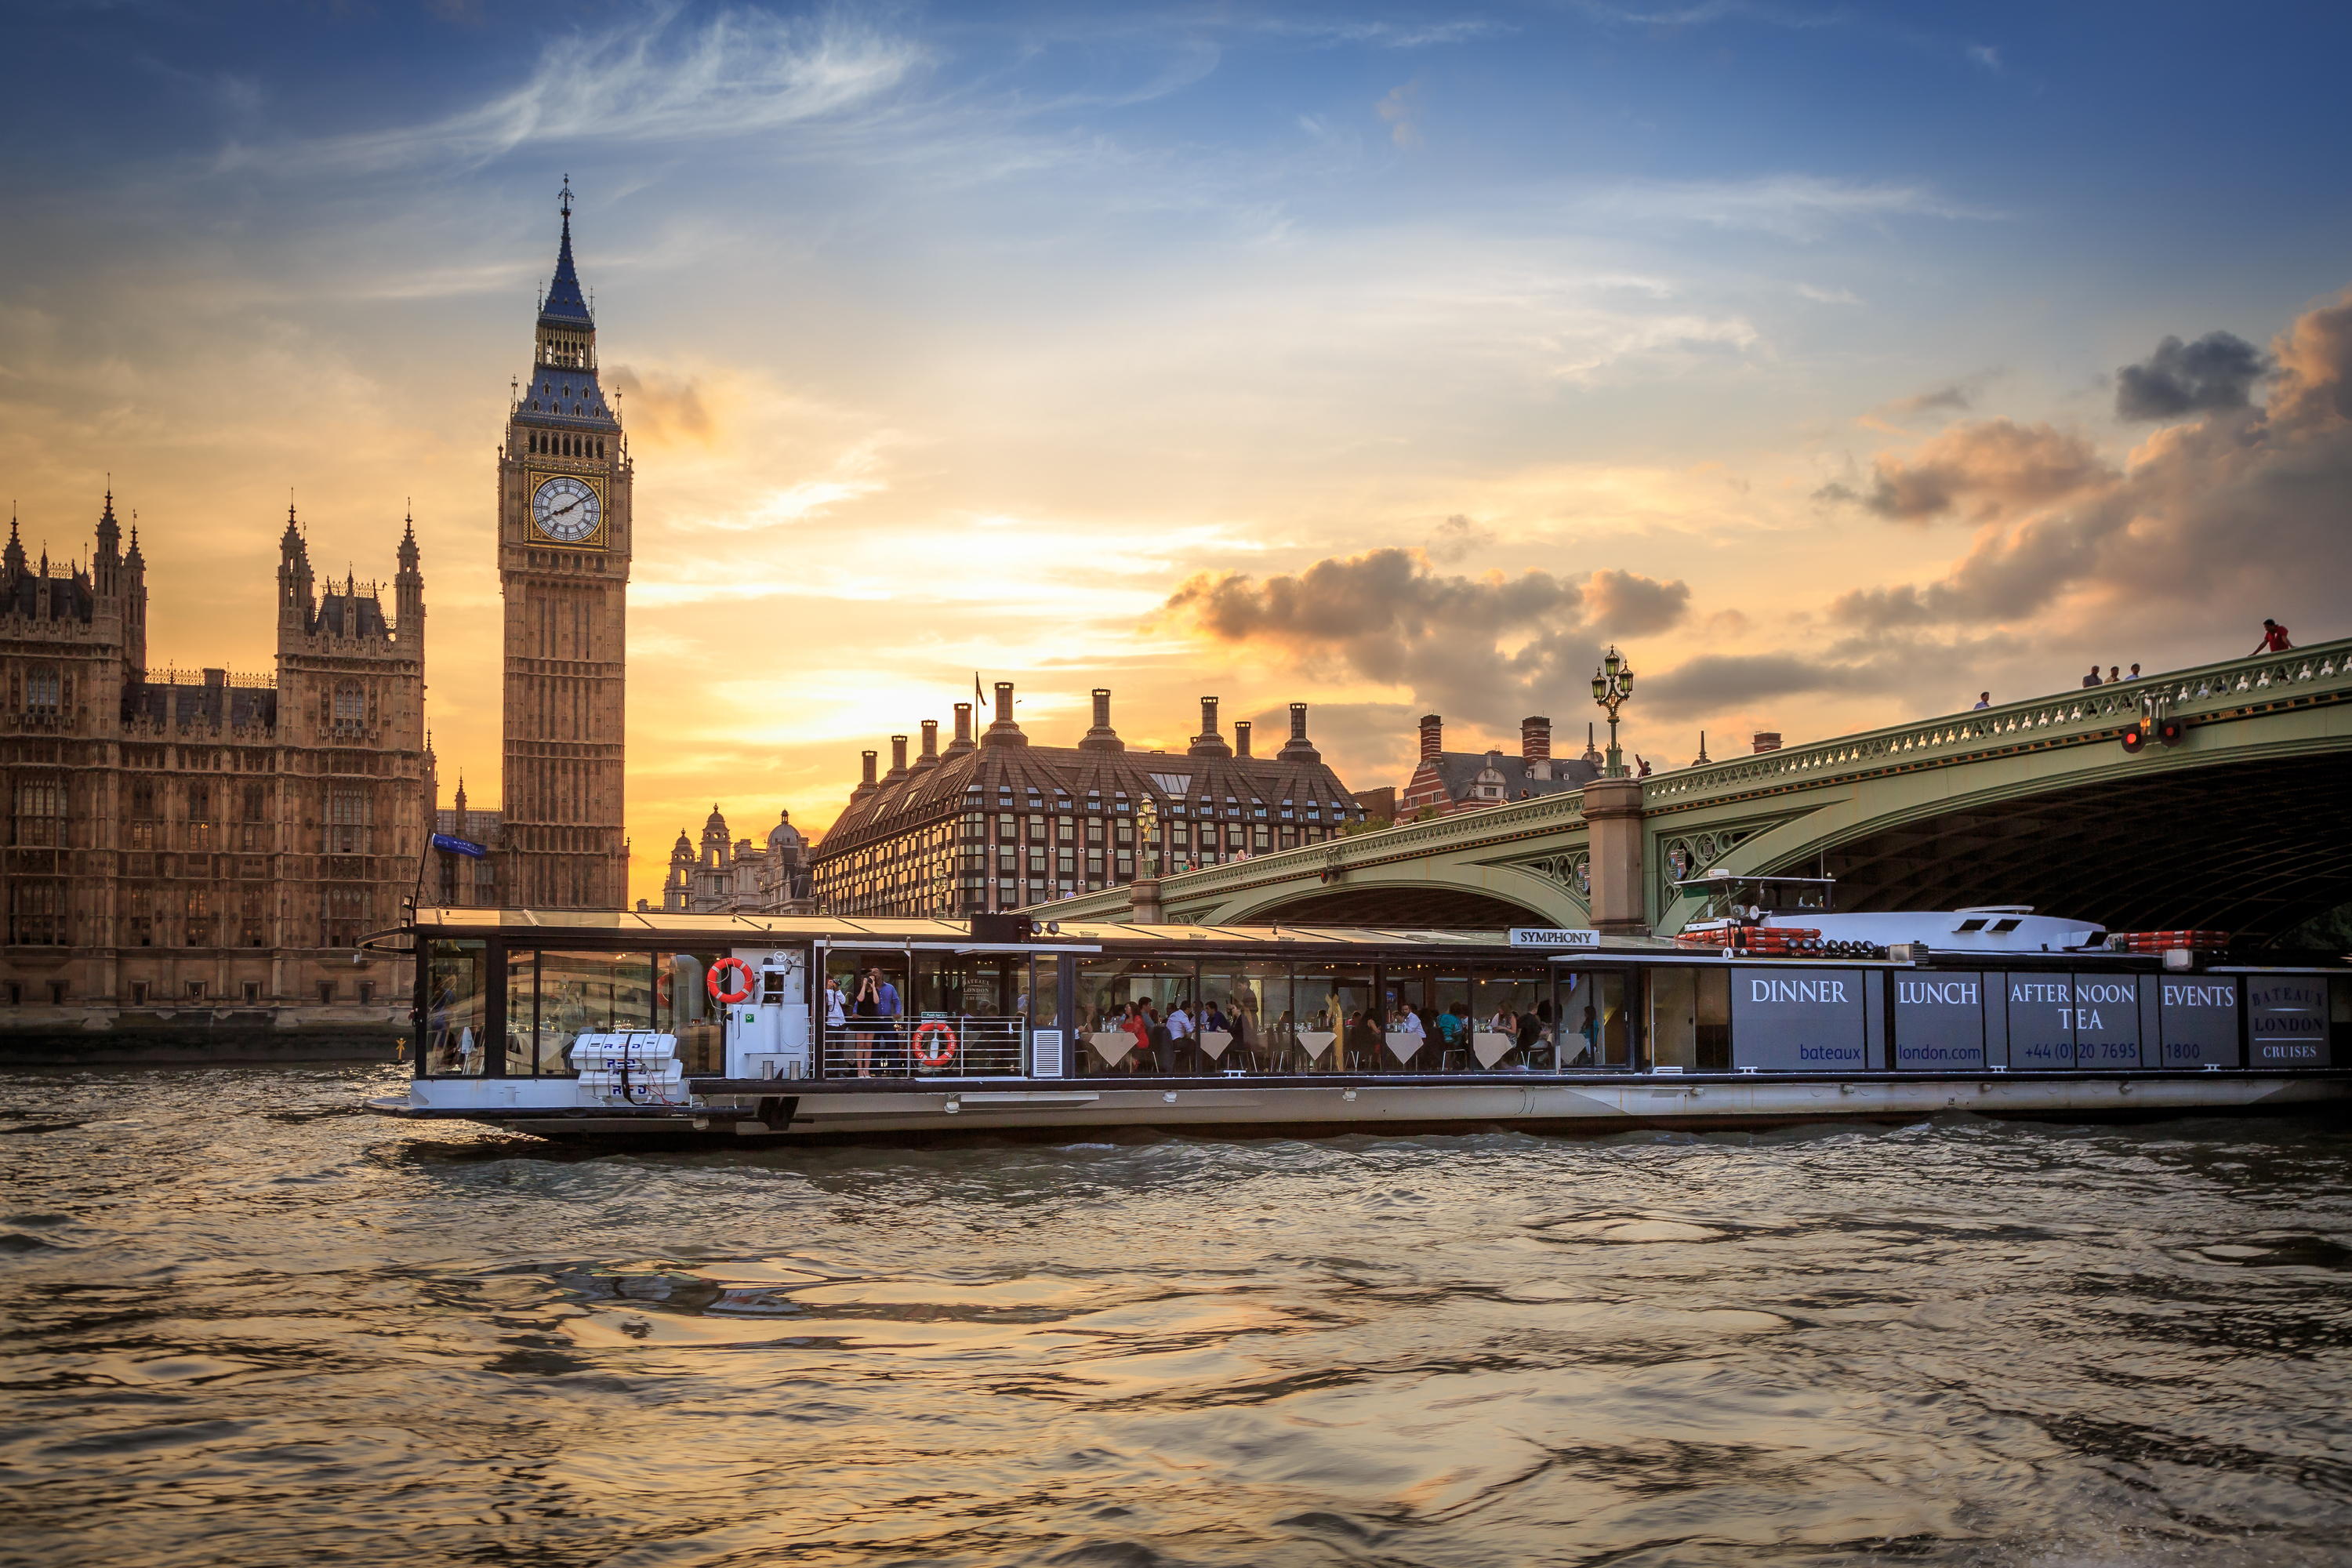 Win a luxury dinner cruise for two courtesy of Bateaux London